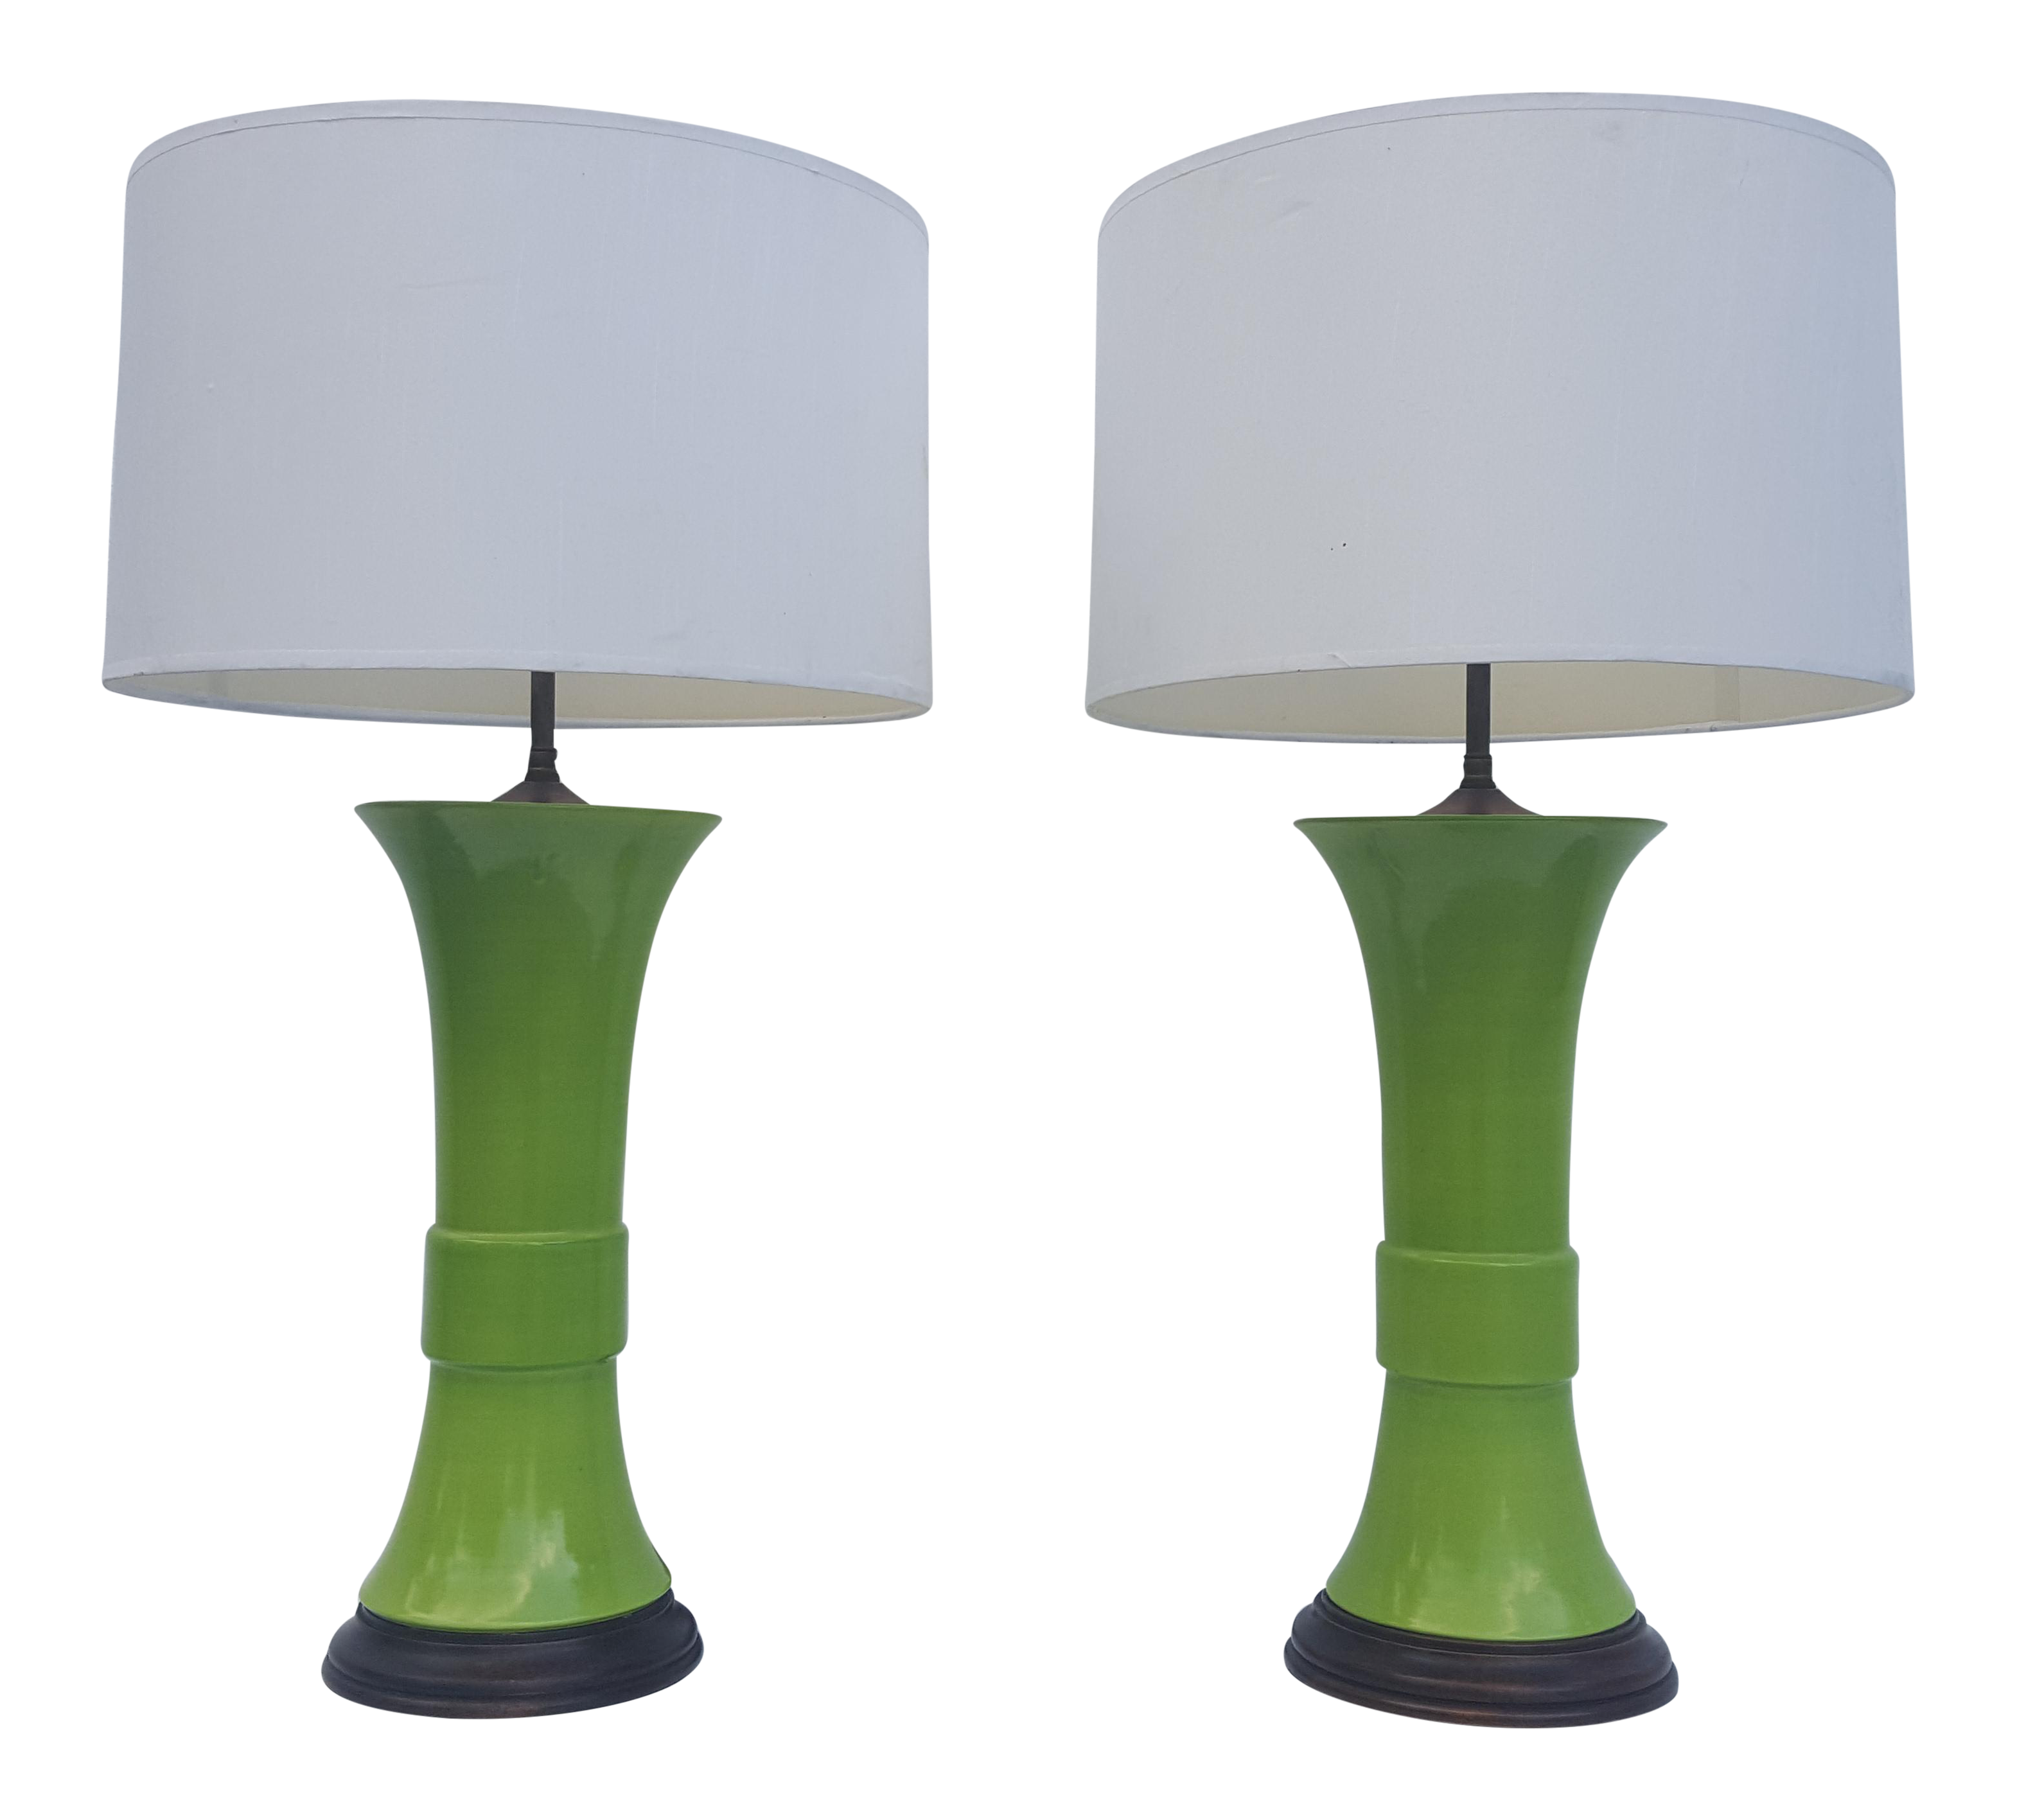 lamps with by glass in table shade for green erpe made lamp library